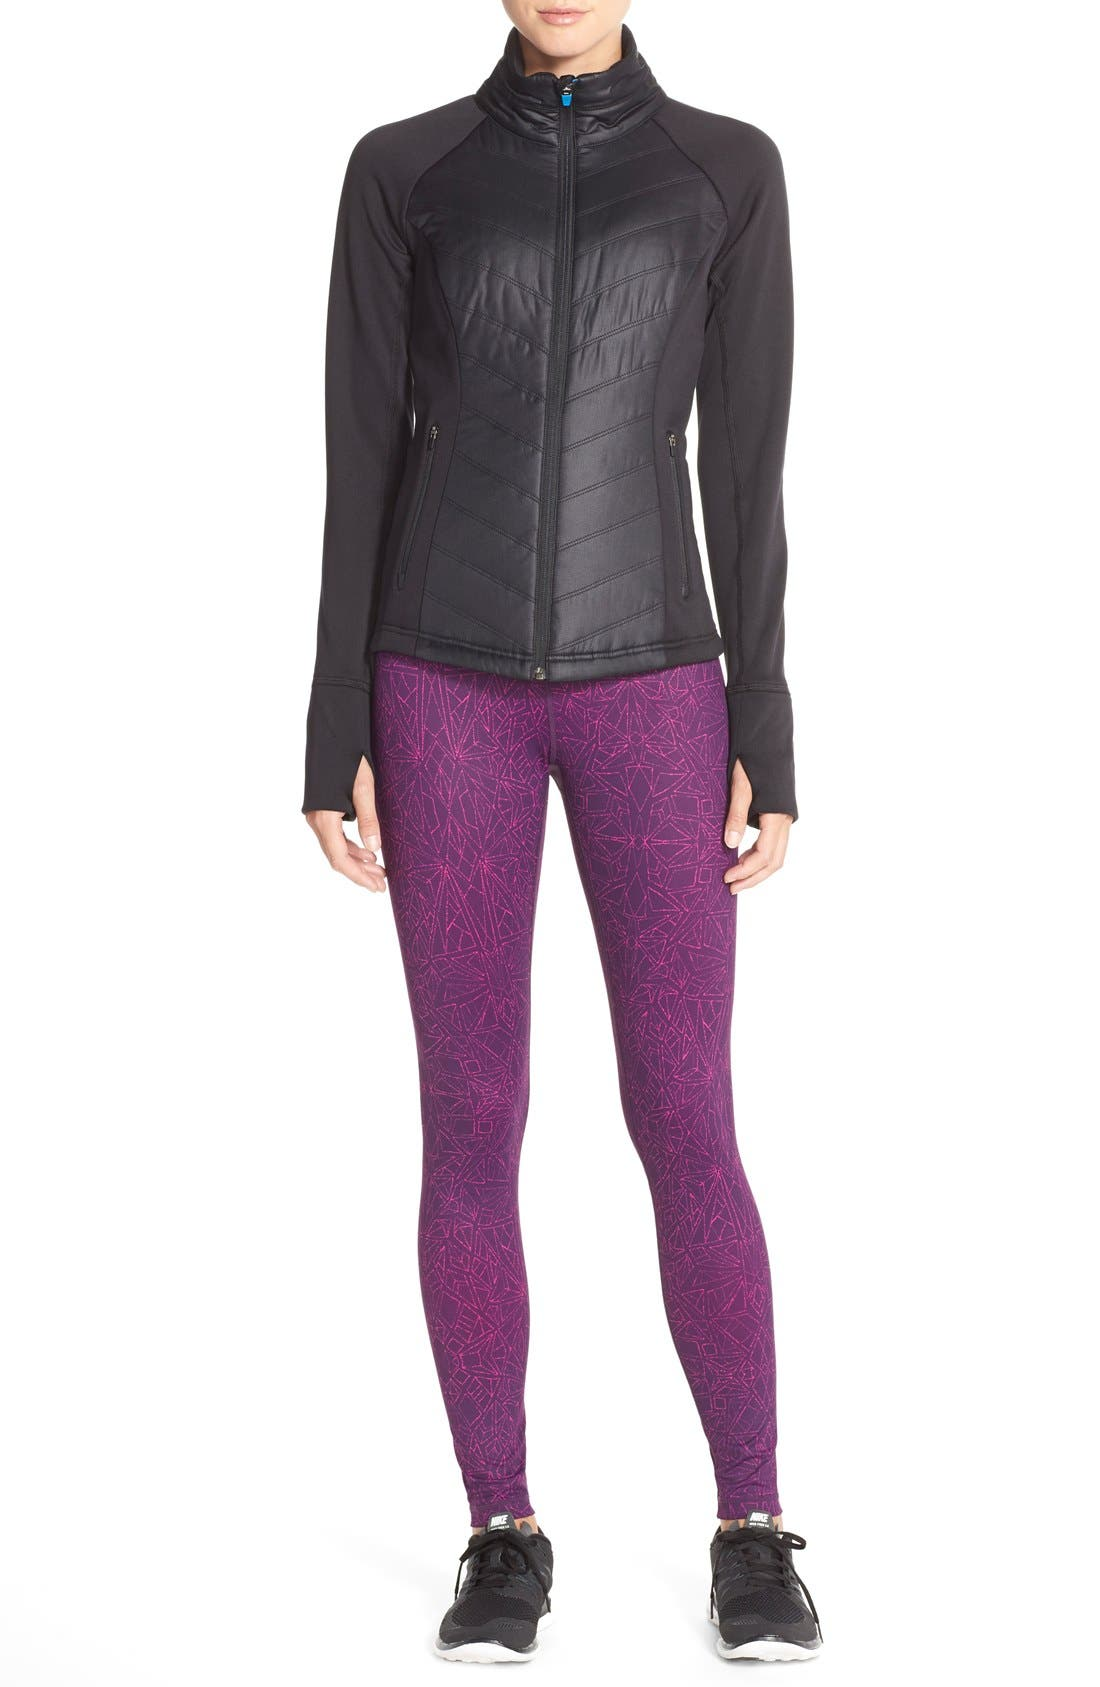 Zelfusion Reflective Quilted Jacket,                             Alternate thumbnail 11, color,                             001